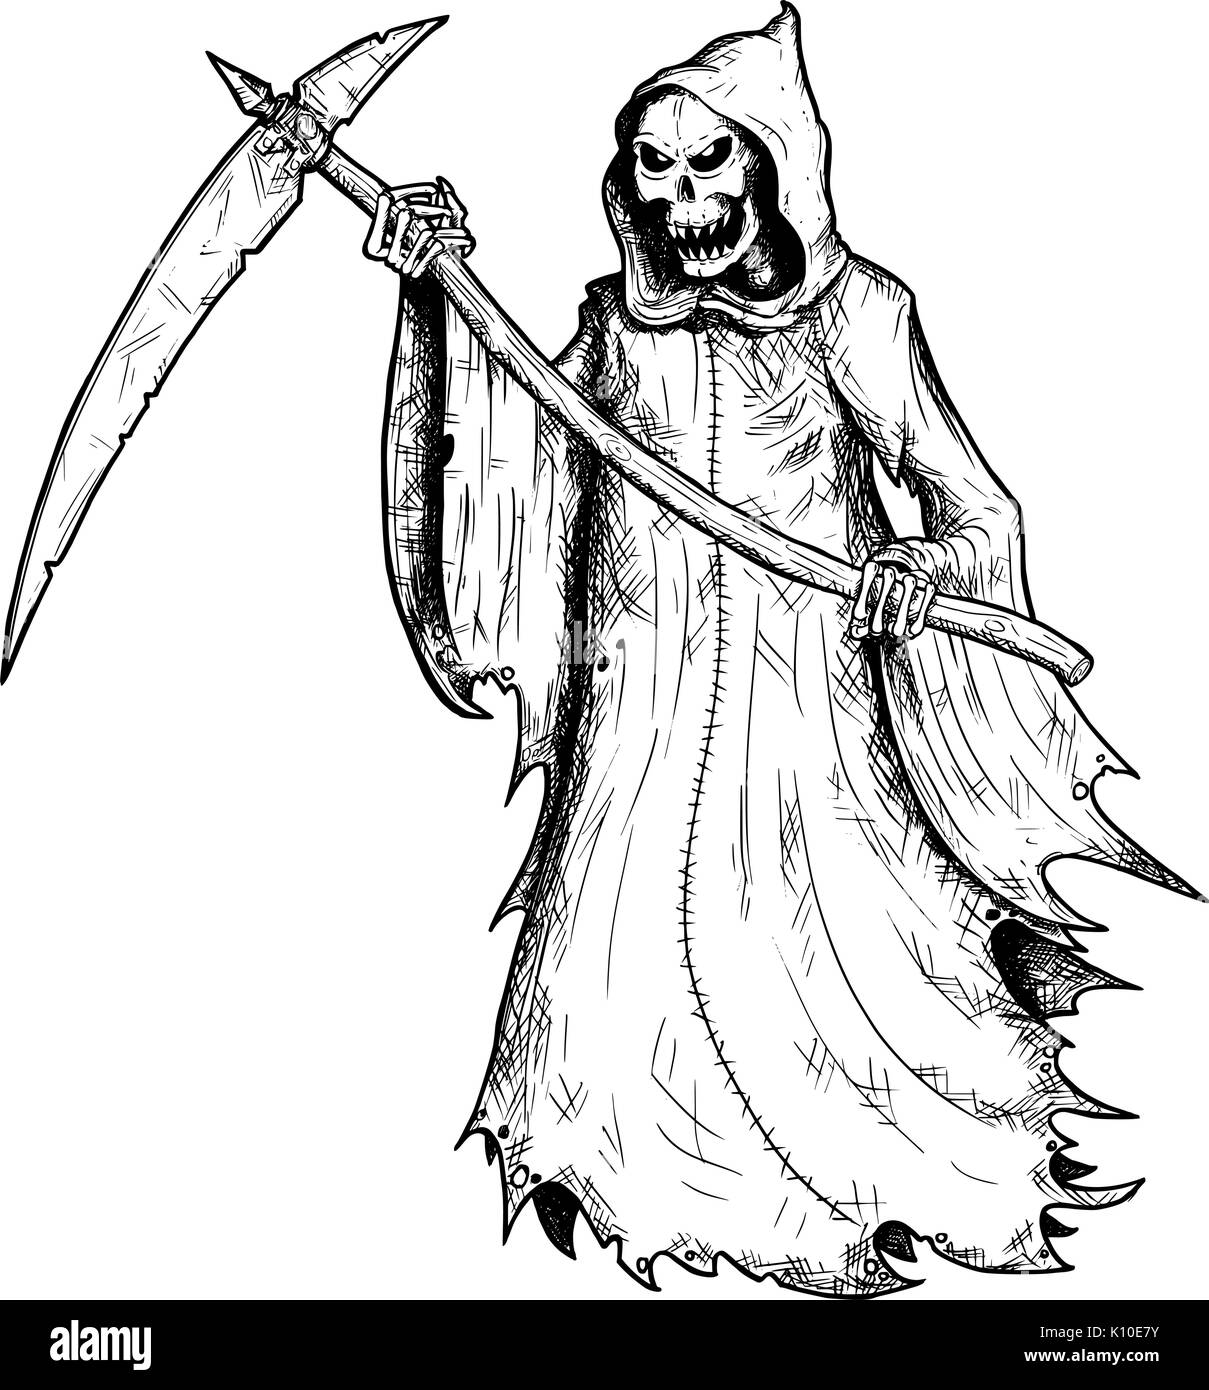 Uncategorized Reaper Drawing hand drawing illustration of halloween grim reaper human skeleton with scythe personification death